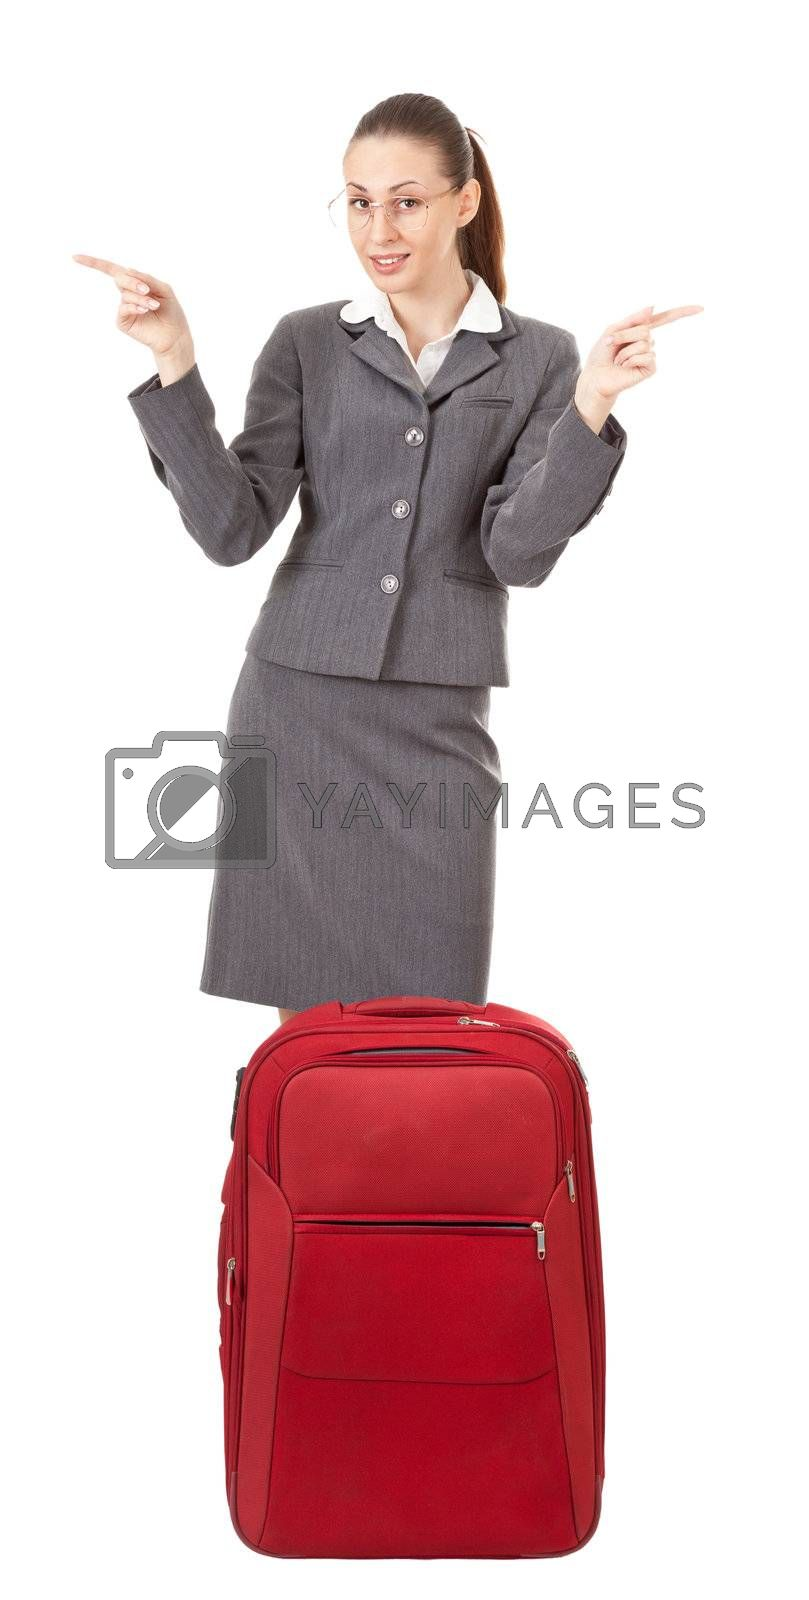 office manager, a girl in business attire